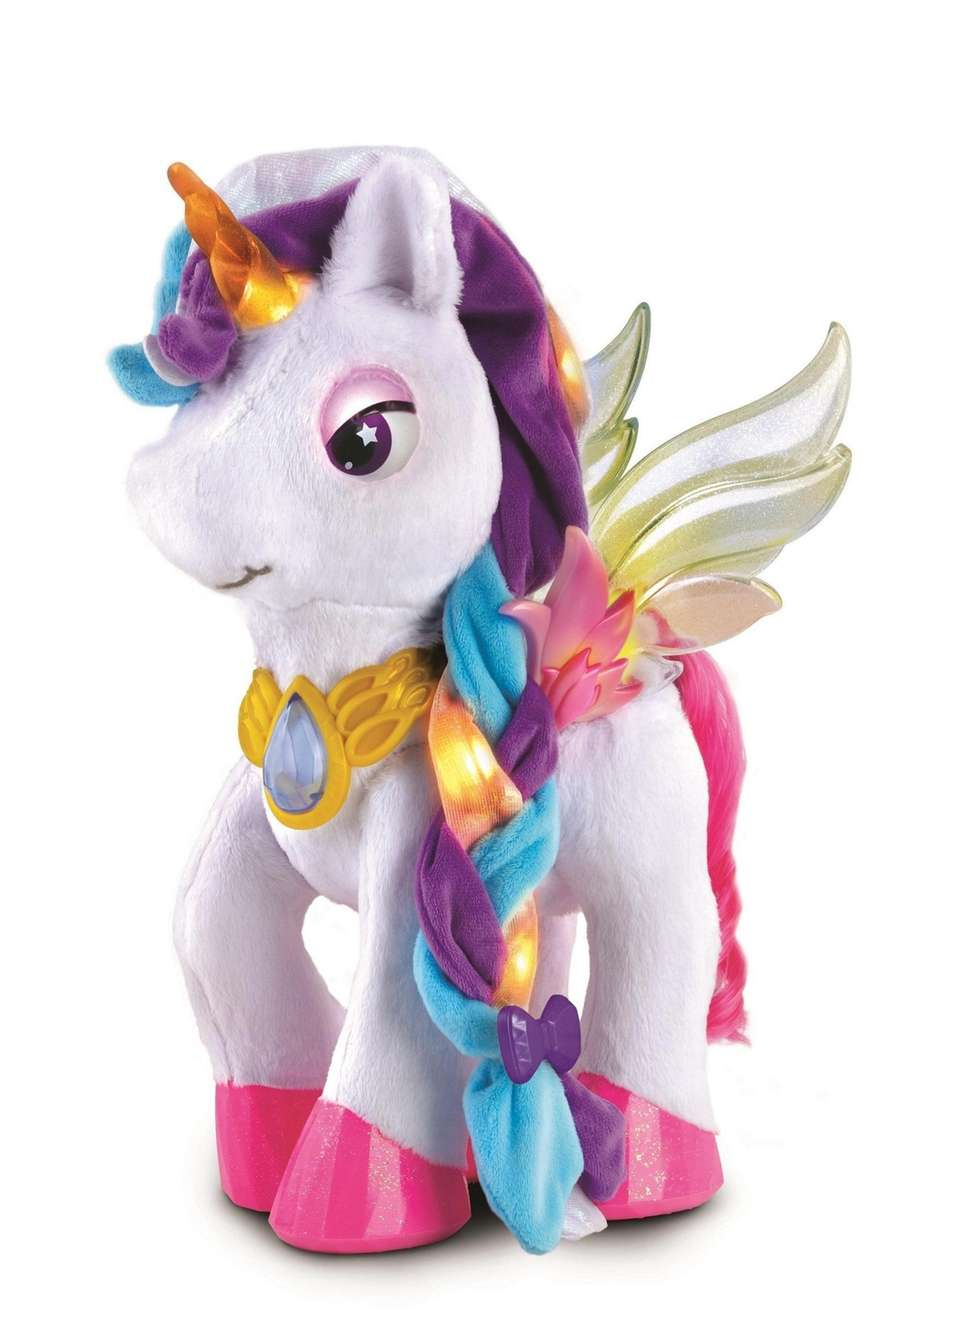 Myla, a robotic unicorn, glitters with lights when